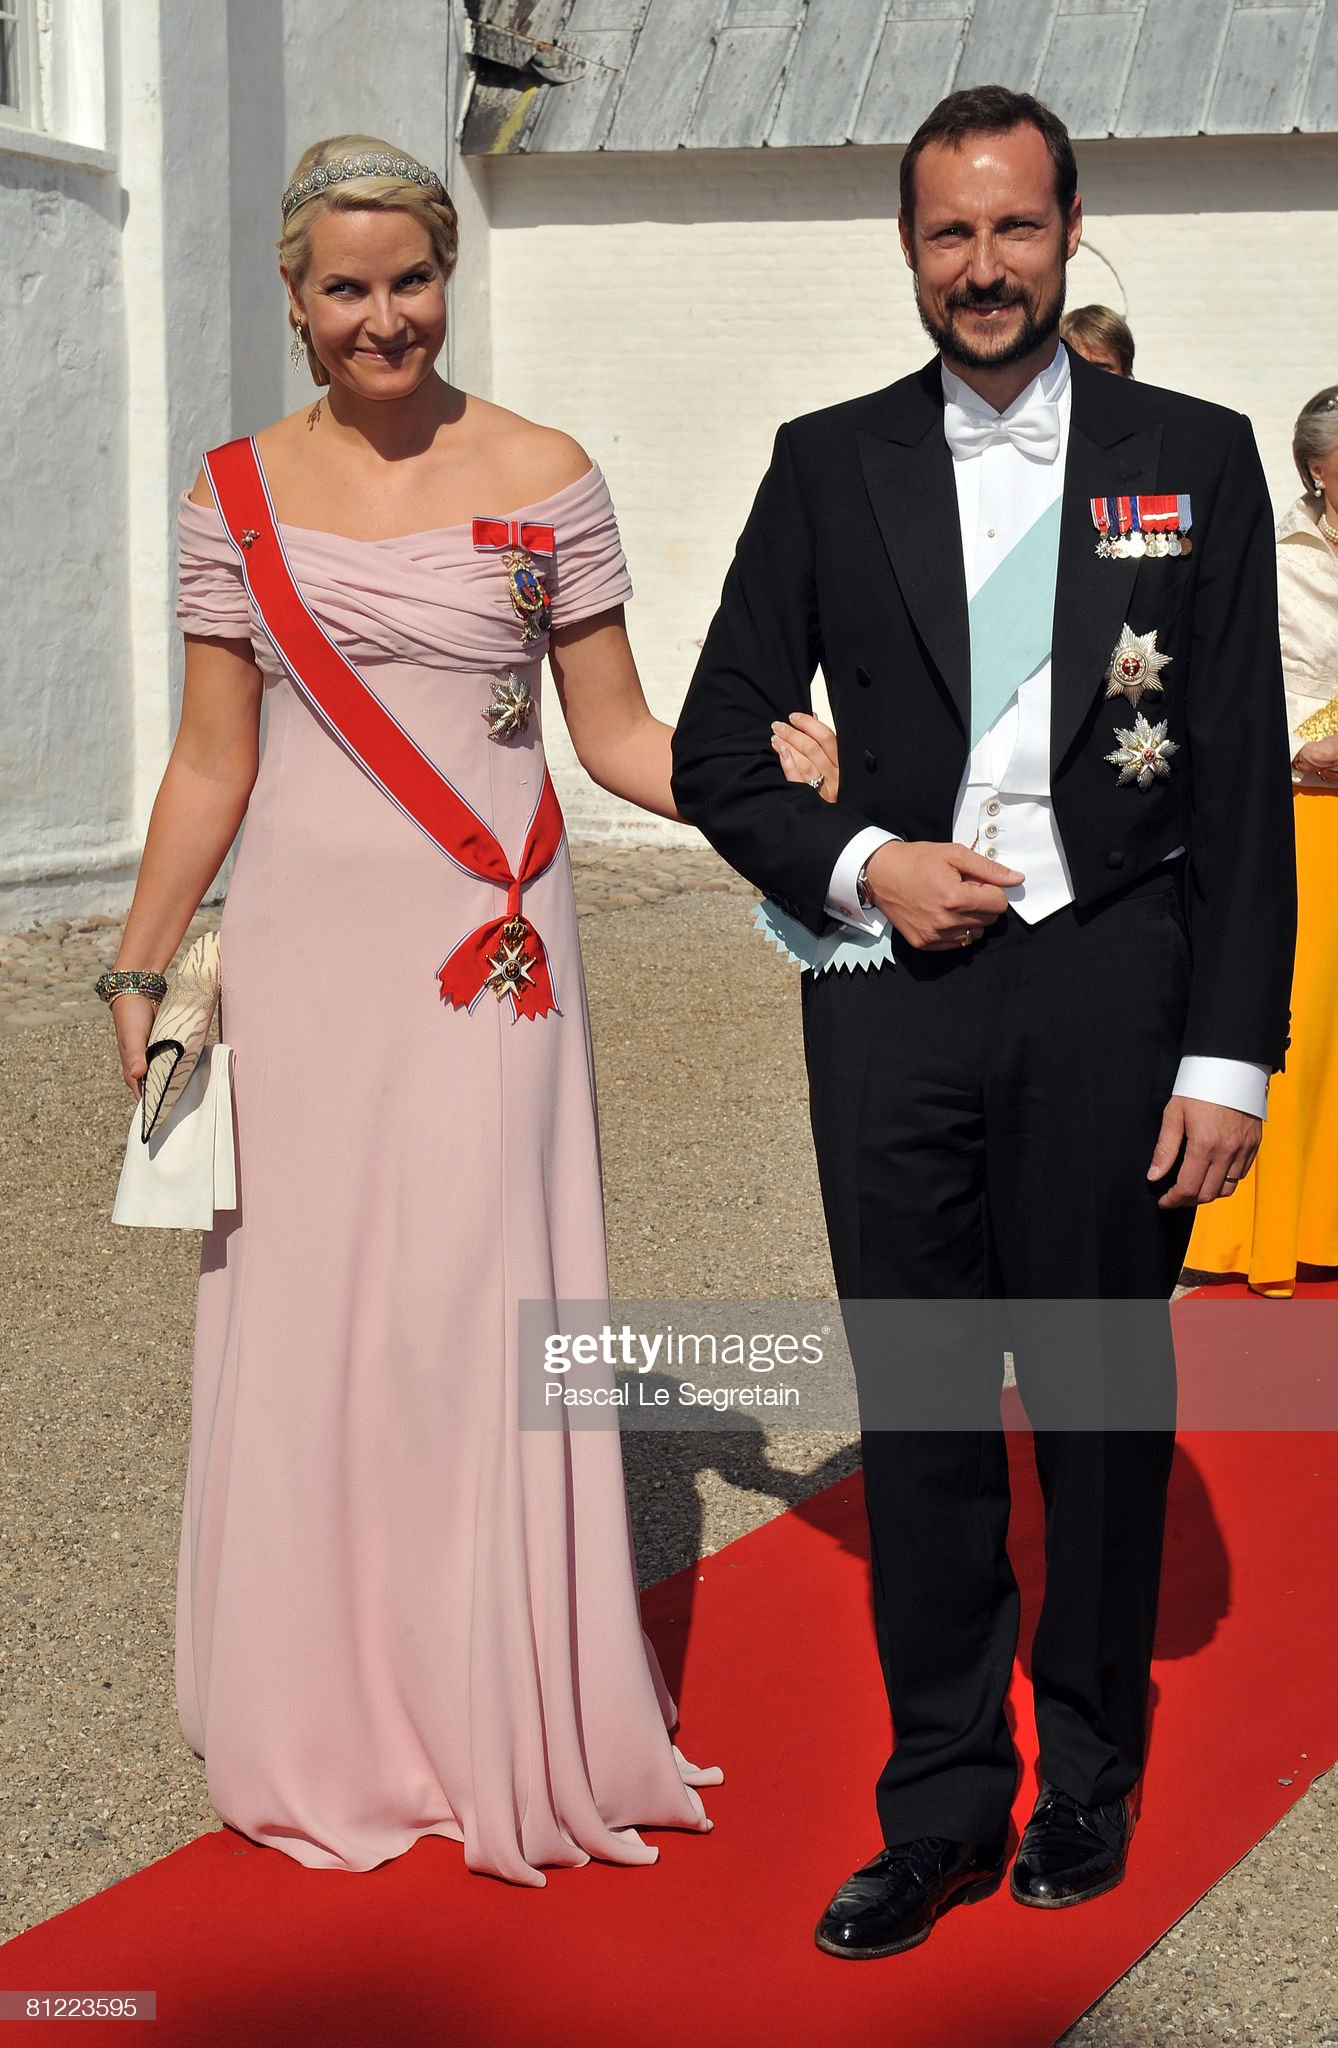 Prince Joachim and Miss Marie Cavallier - Wedding : News Photo